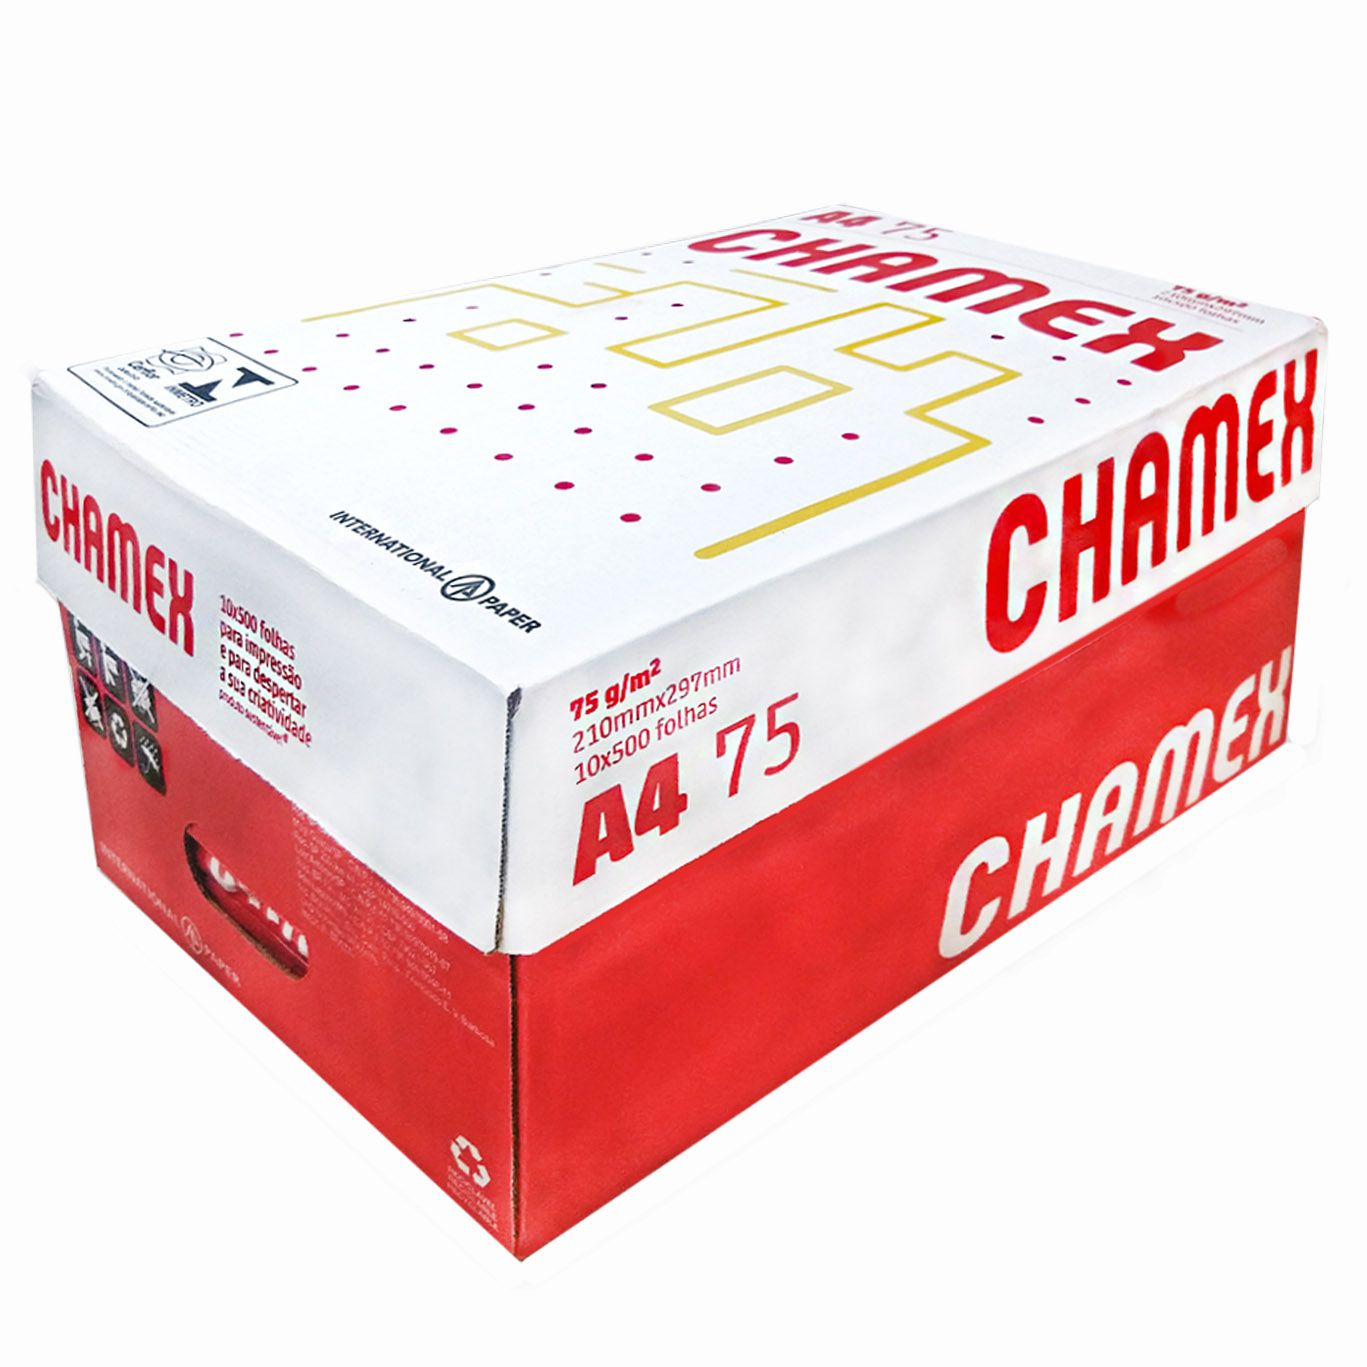 Papel Sulfite Chamex Office 210mm x 297mm 75g A4 - 5000 Folhas (10 resma)